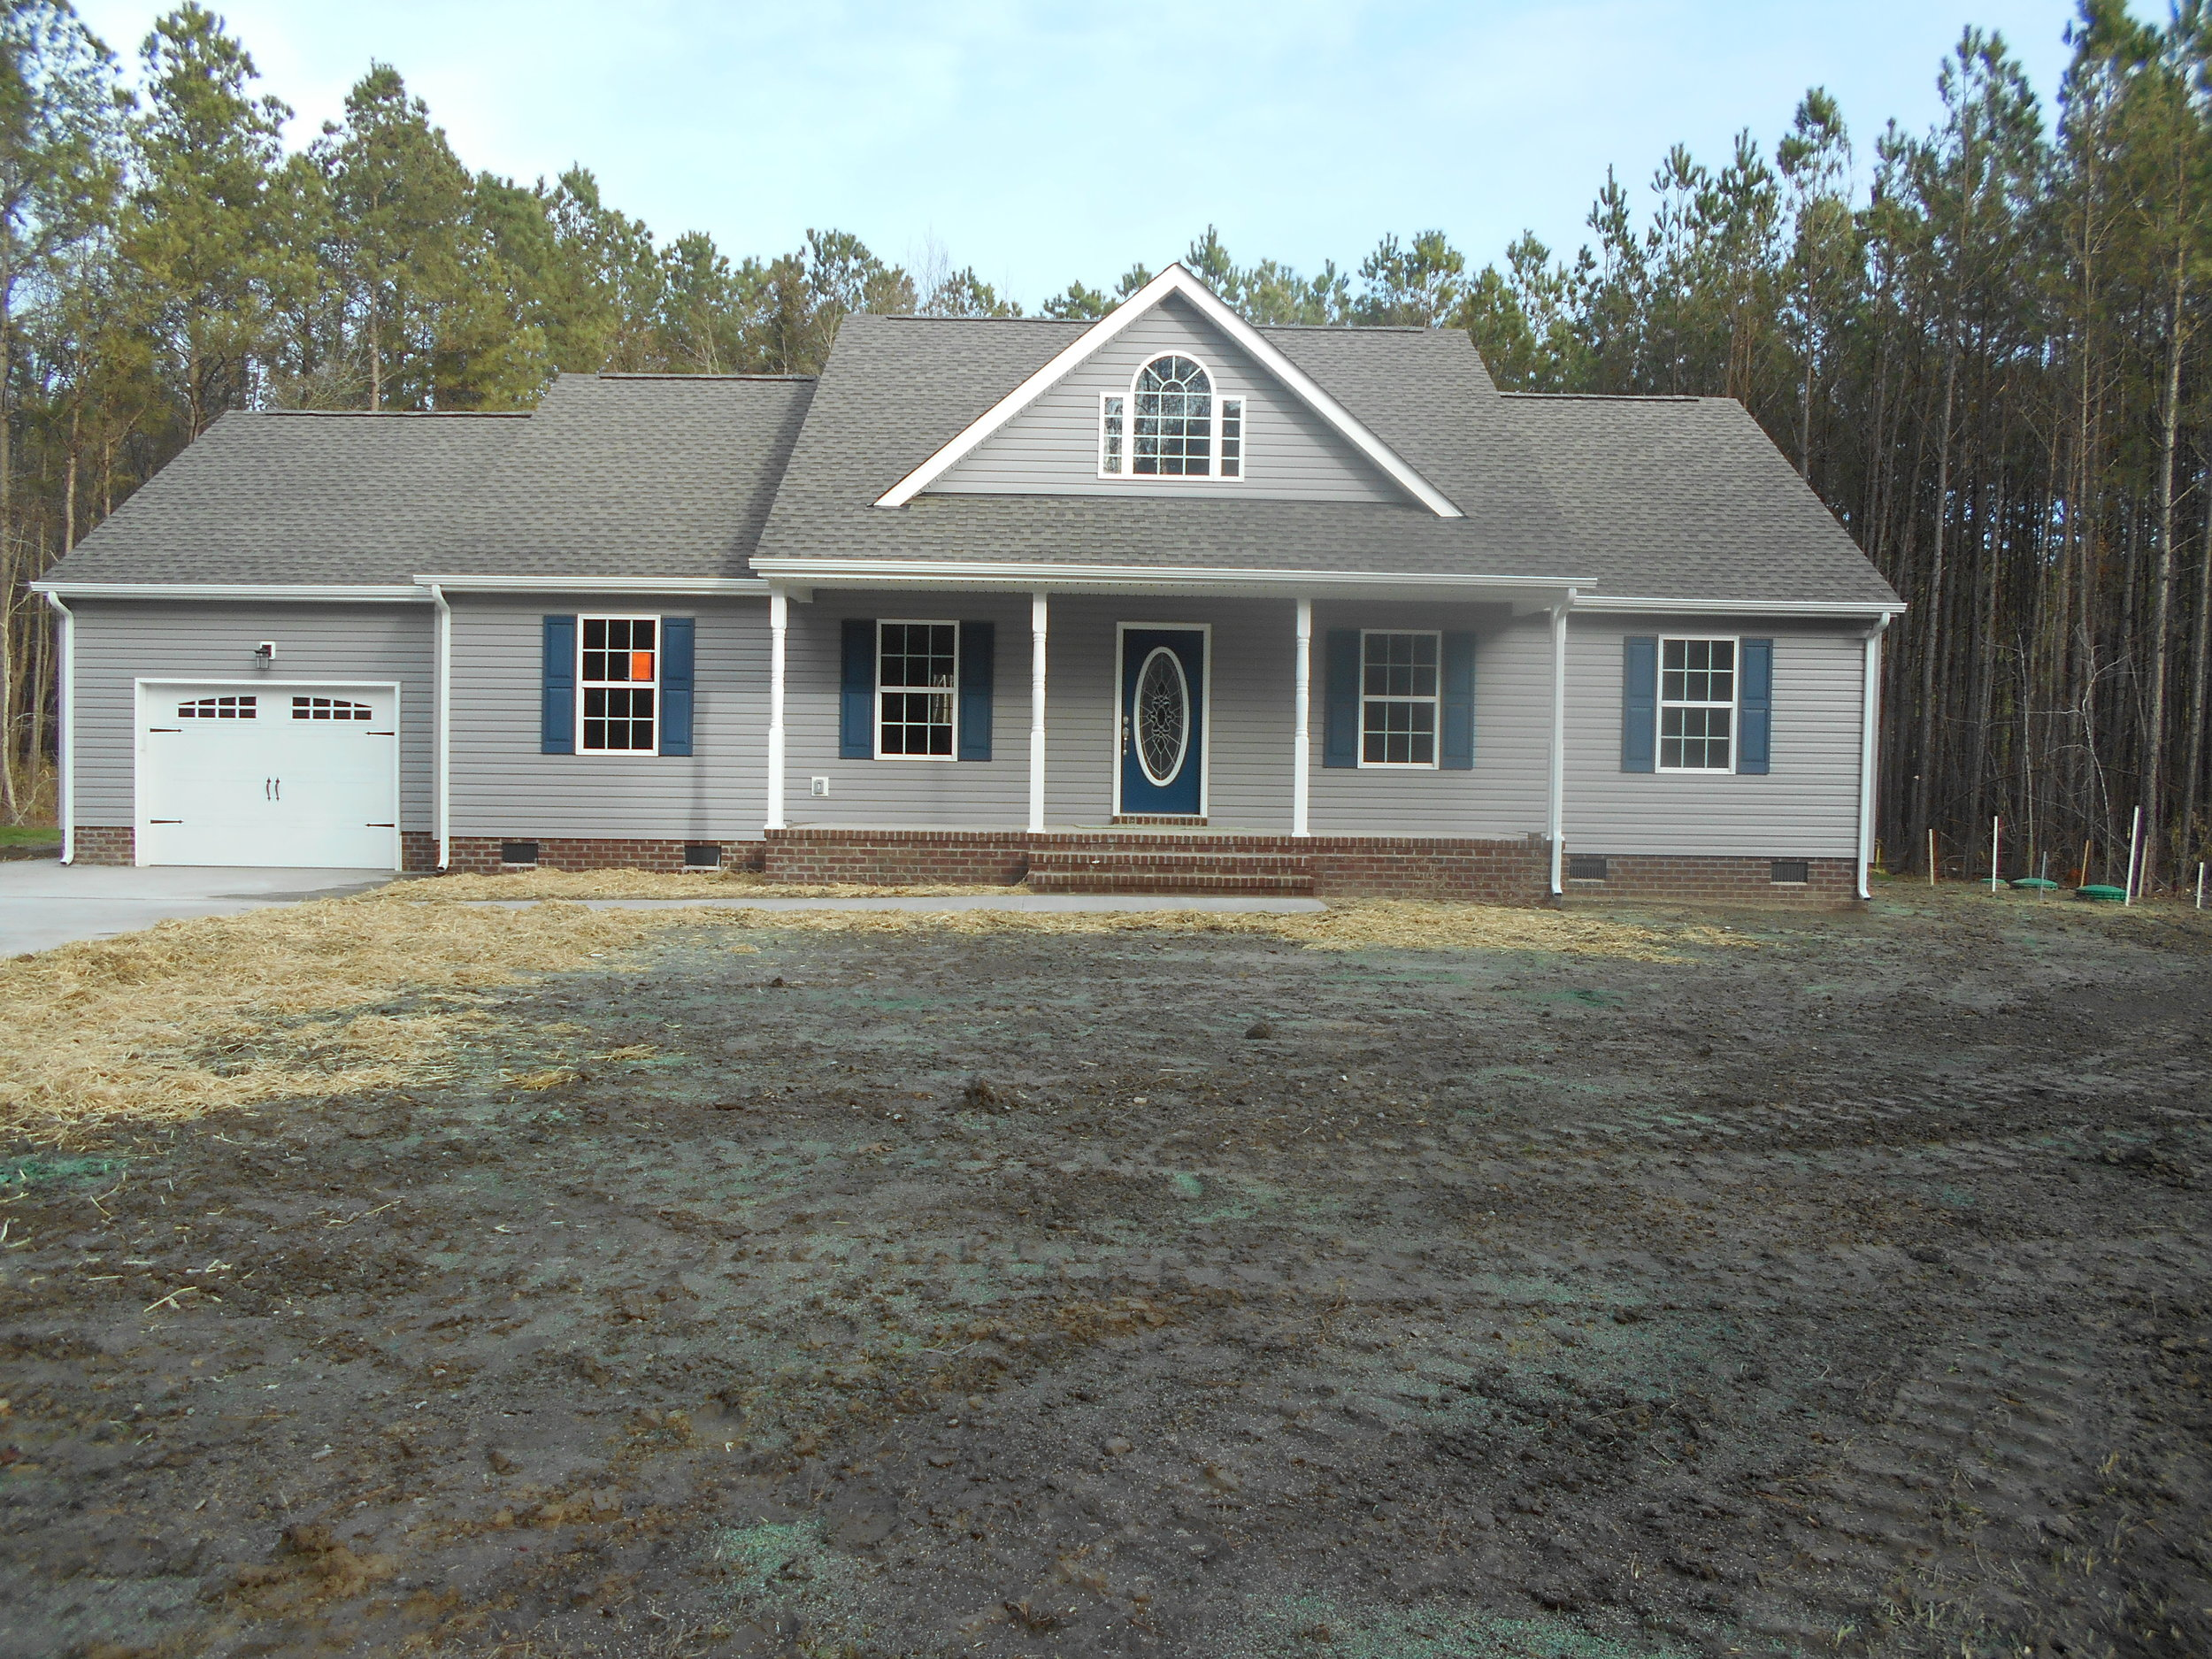 1832 AIRPORT RD. - NEW CONSTRUCTION ON OVER AN ACRE